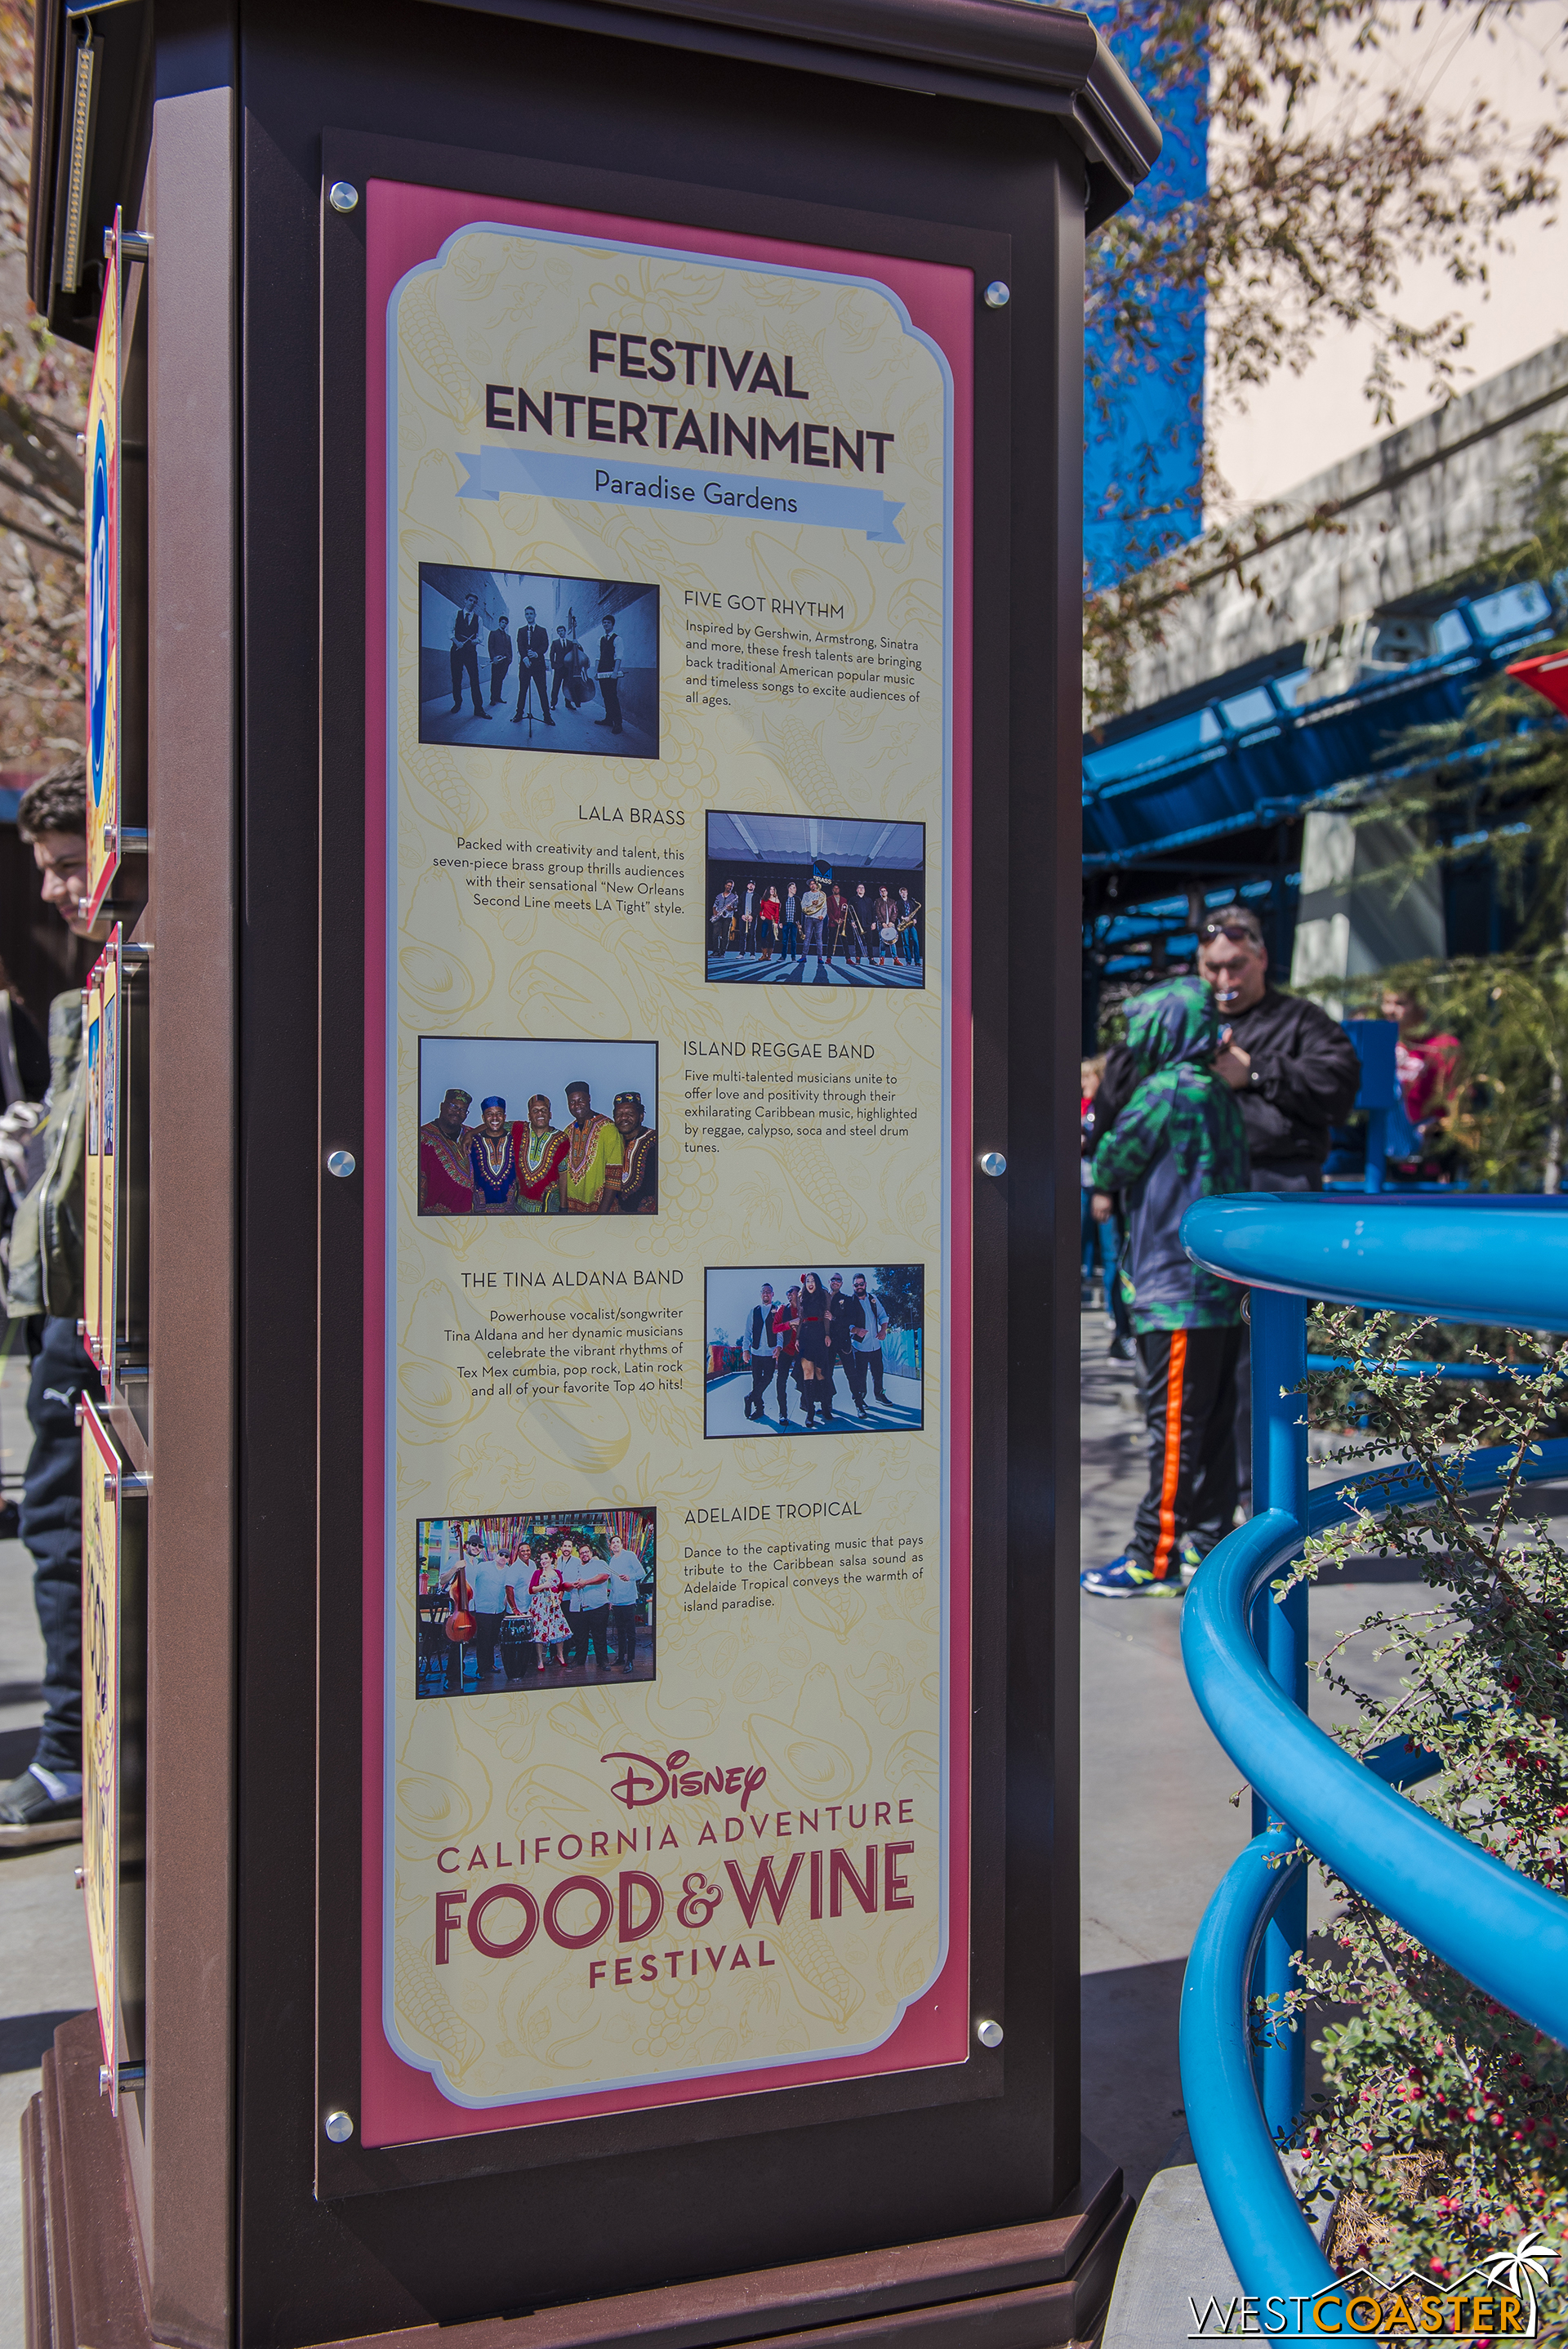 Just some of the artists performing at Food & Wine this year.